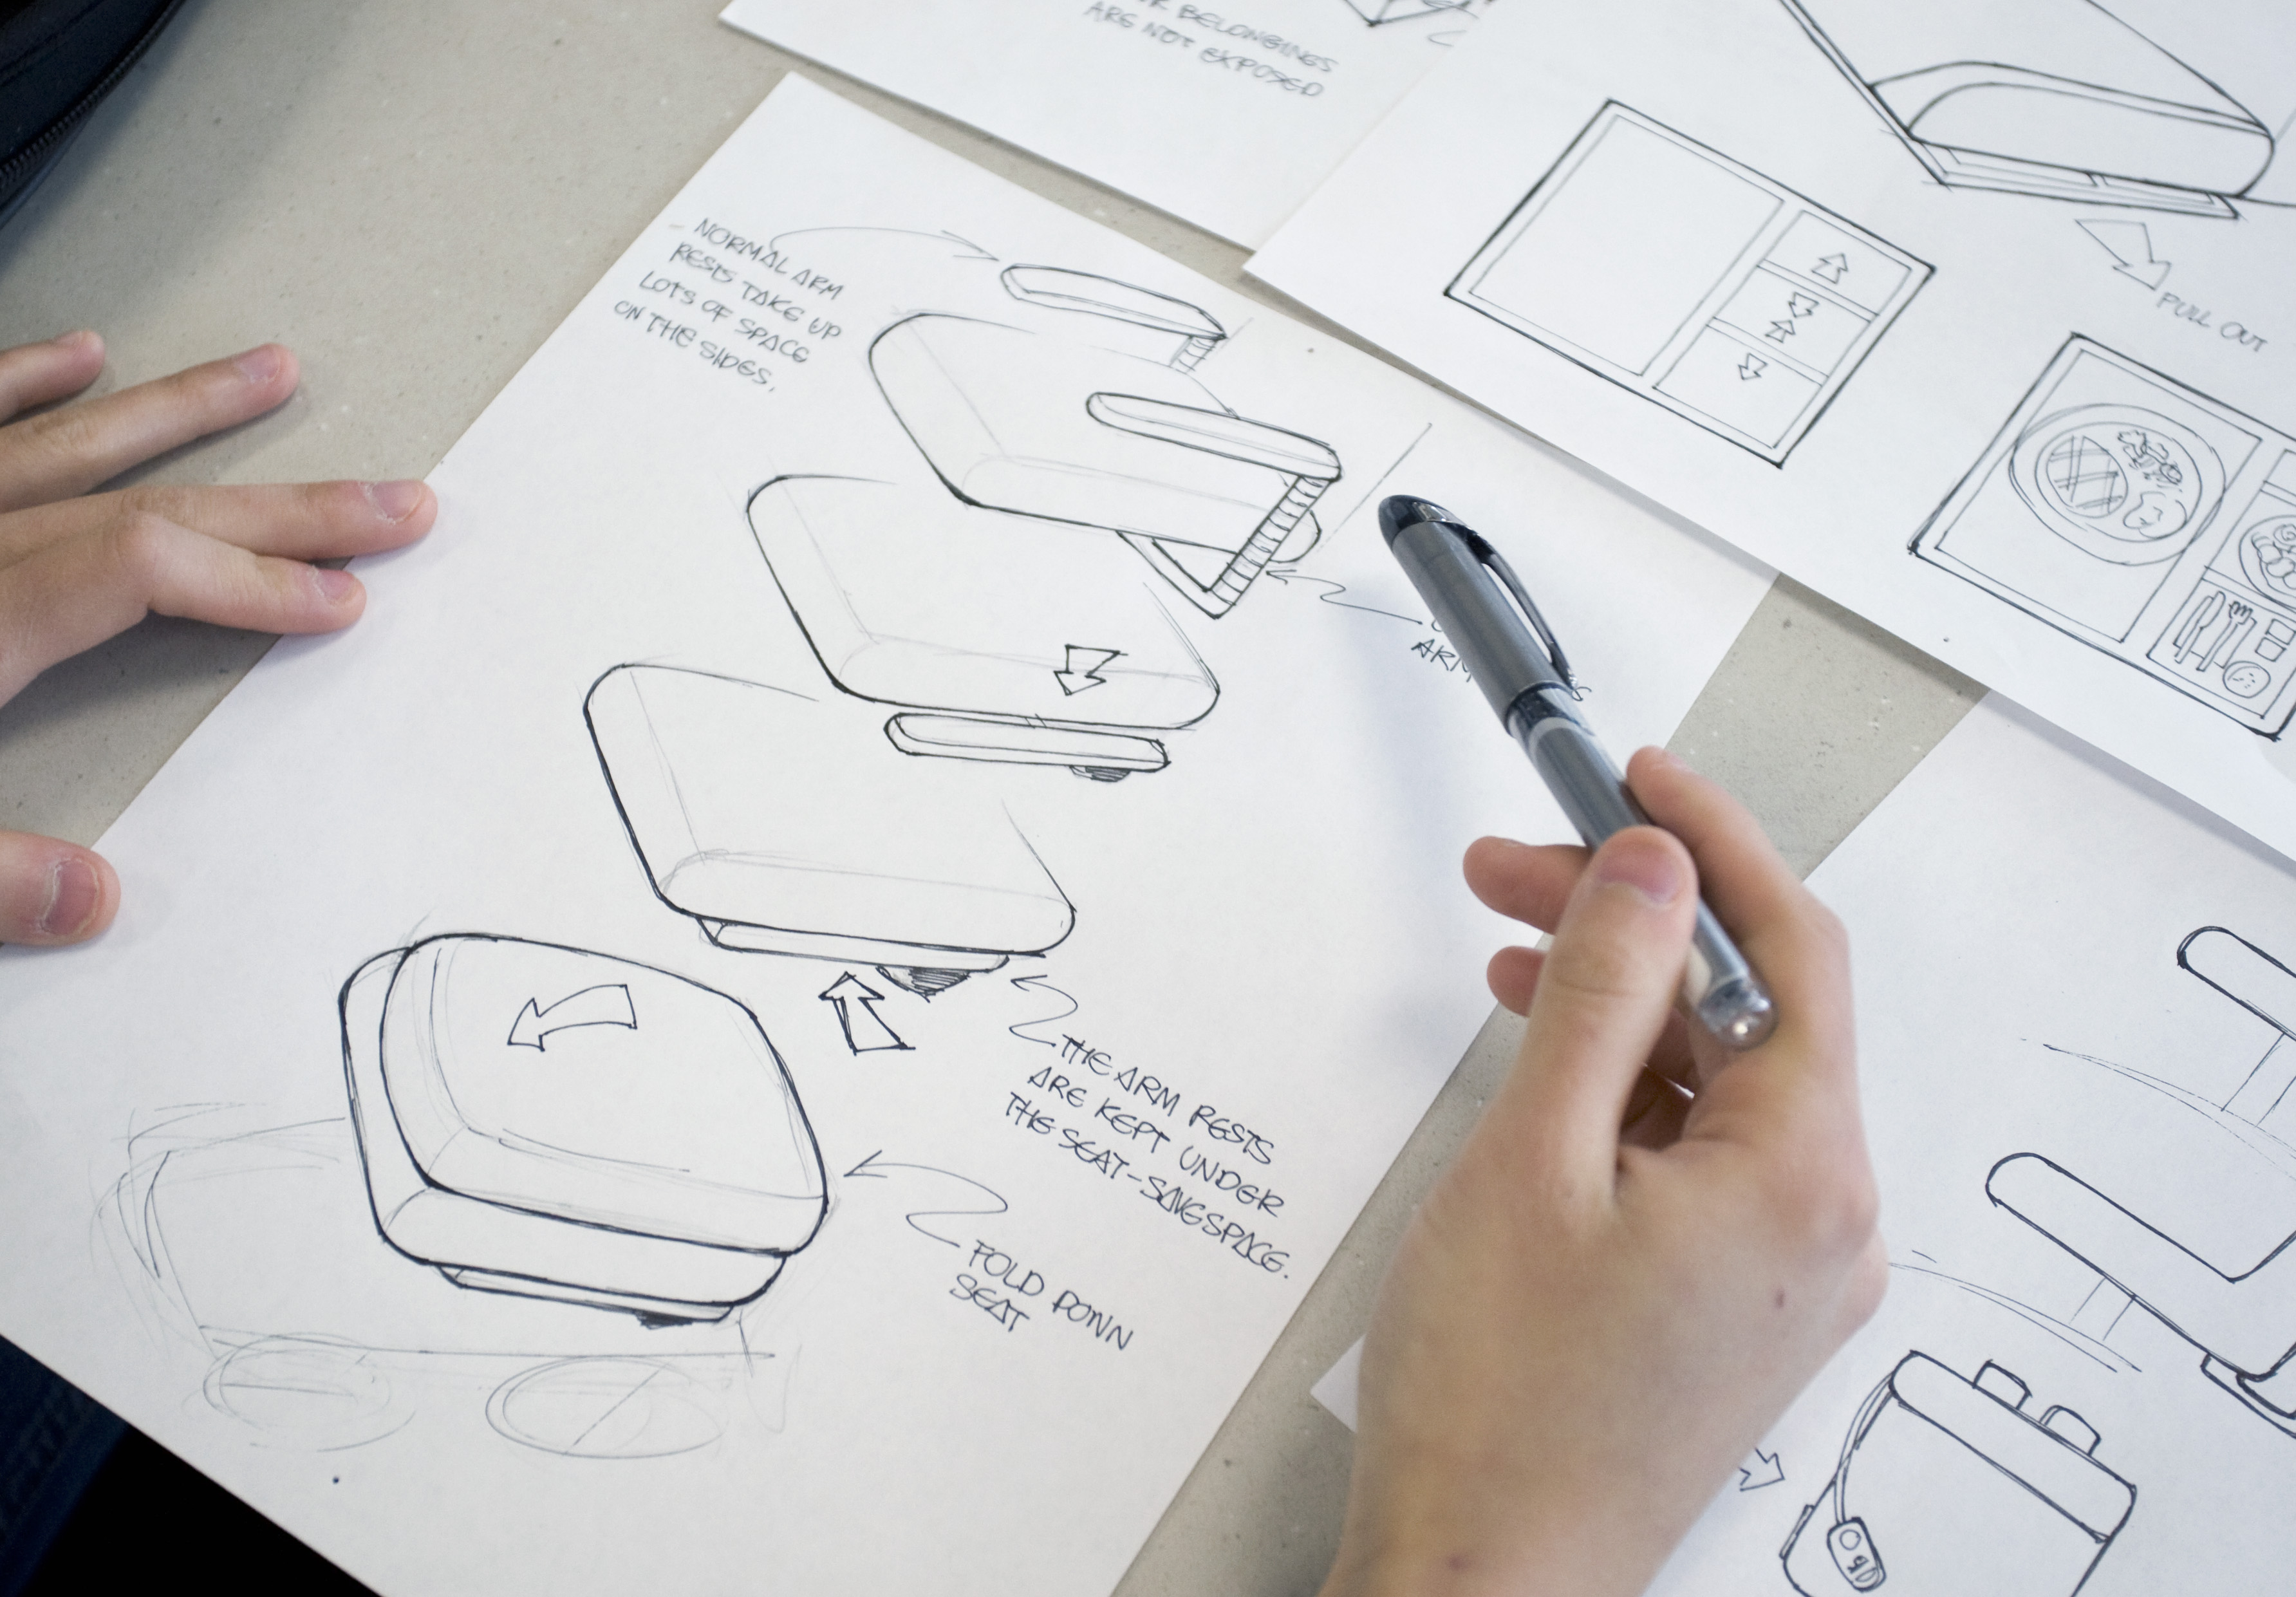 MIT Offers Intensive One-Week Rapid Prototyping Course for